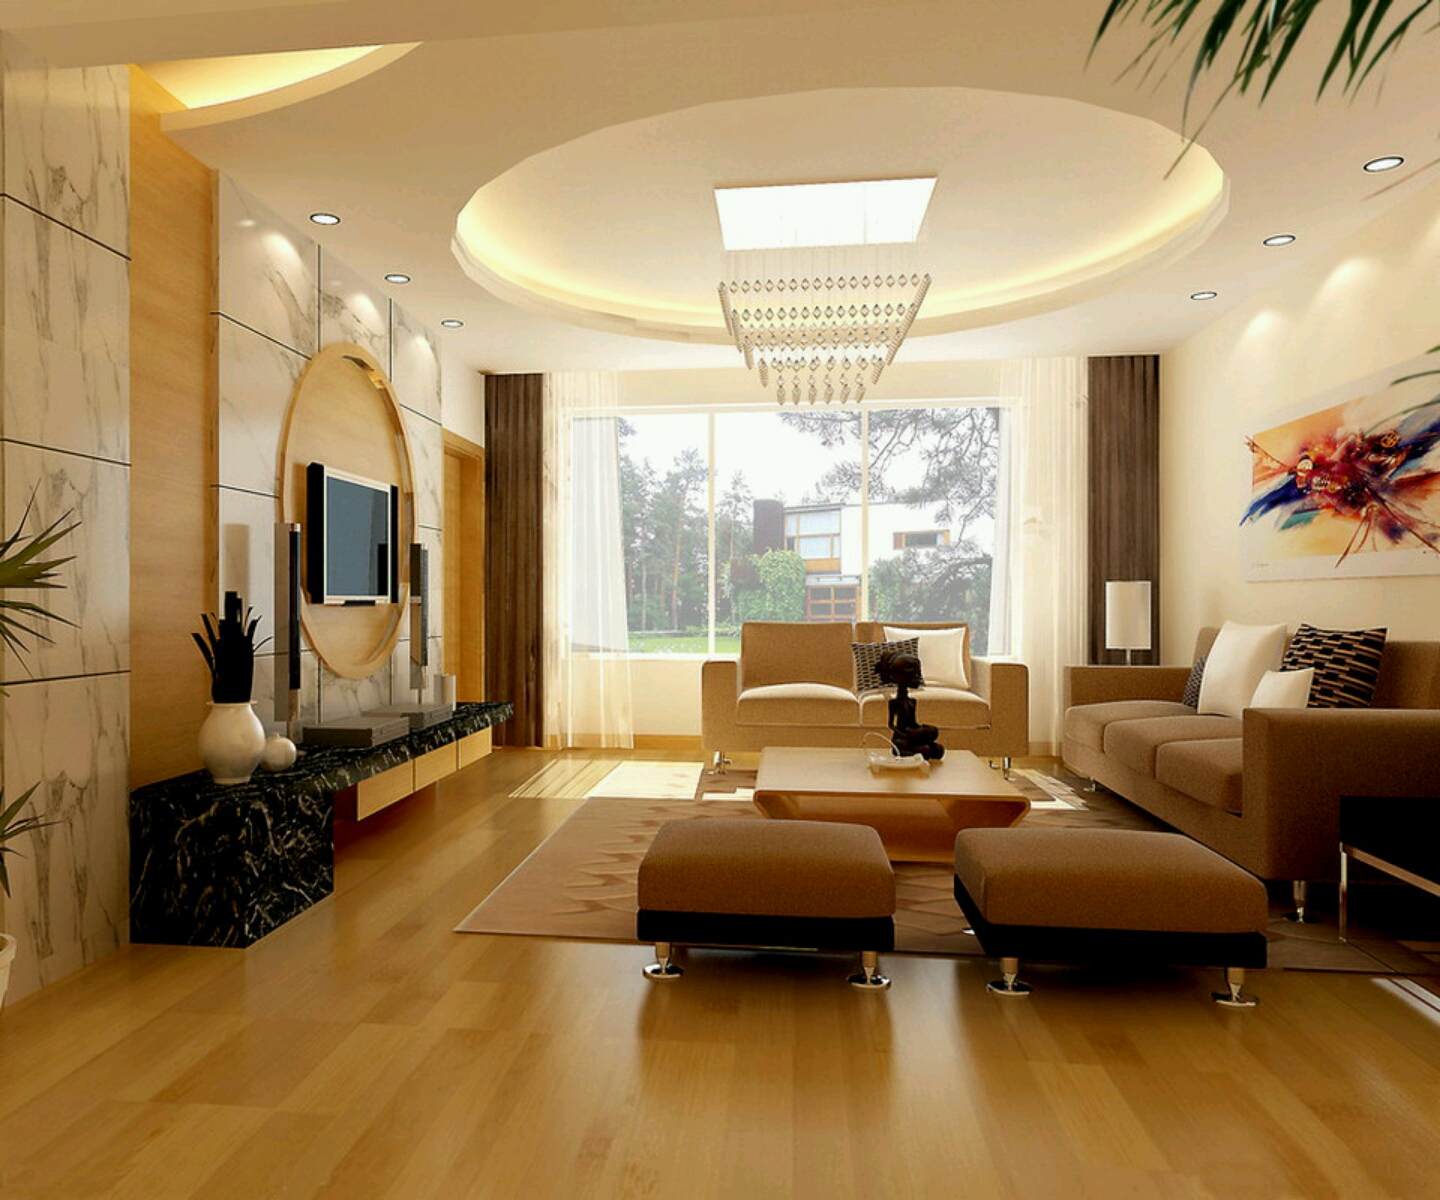 Modern interior decoration living rooms ceiling designs for Living room furnishing ideas